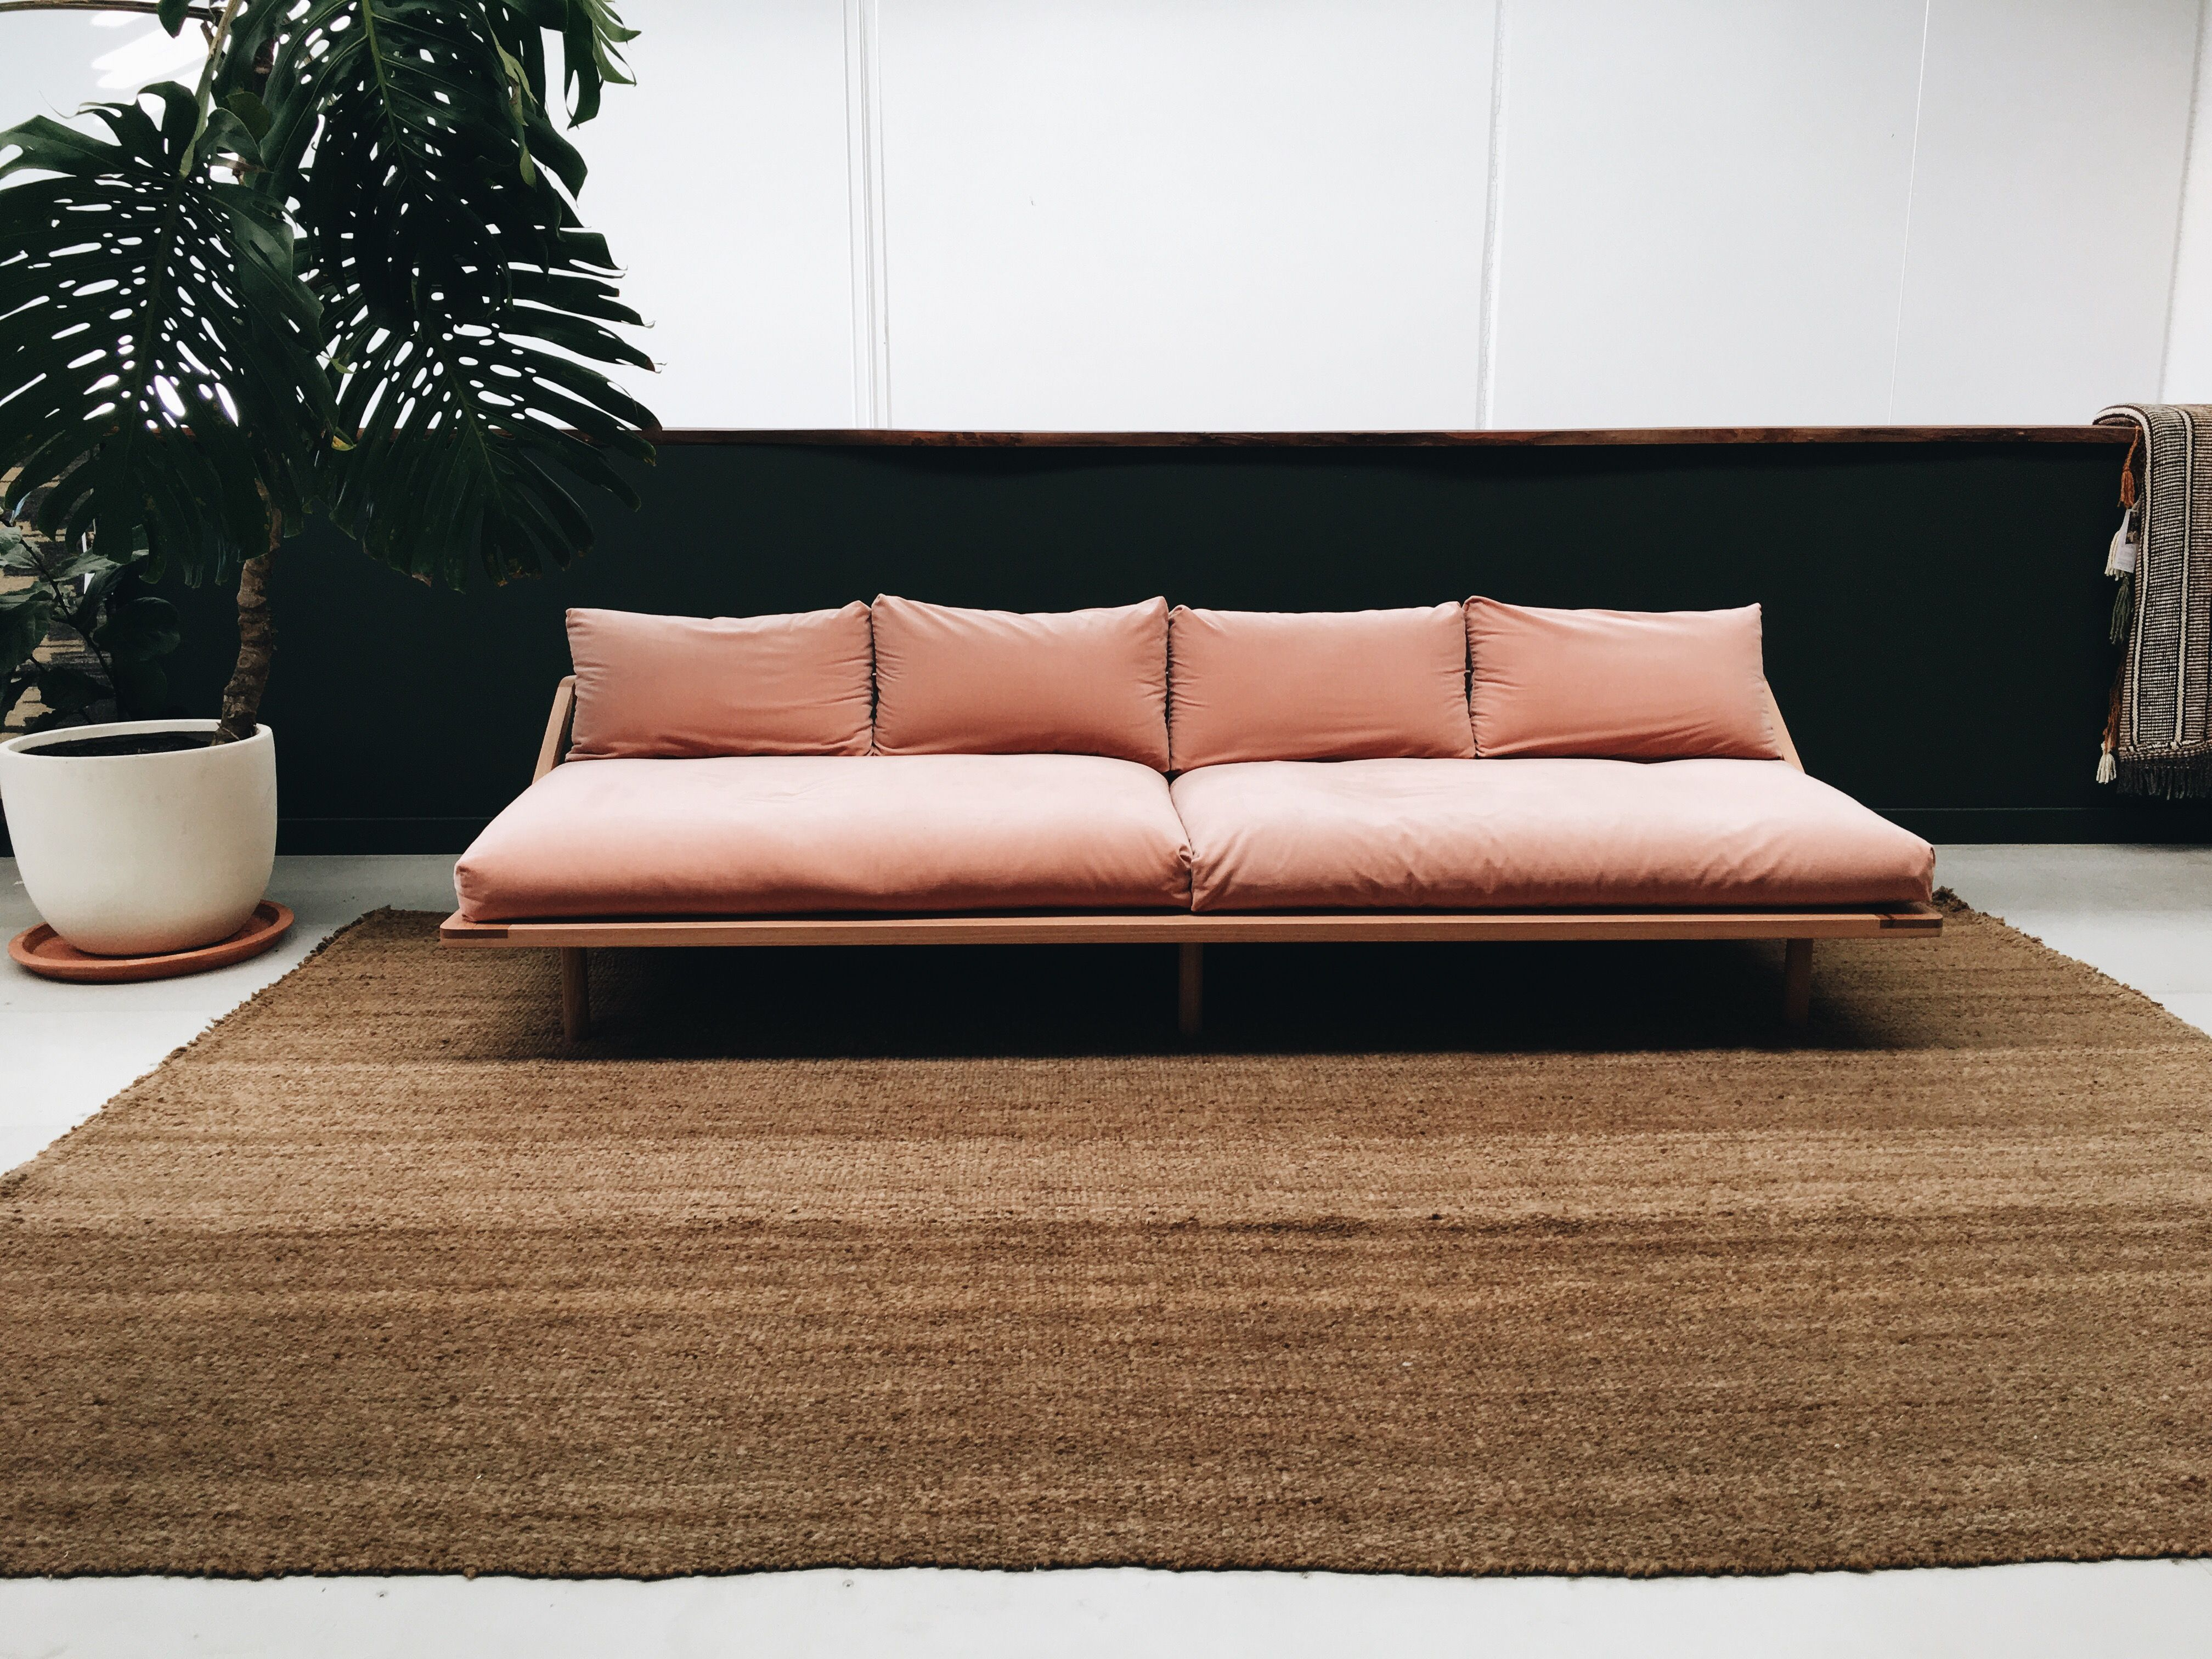 closest i can find to custom couch in theatre room  it u0027s a futon style in closest i can find to custom couch in theatre room  it u0027s a futon      rh   pinterest